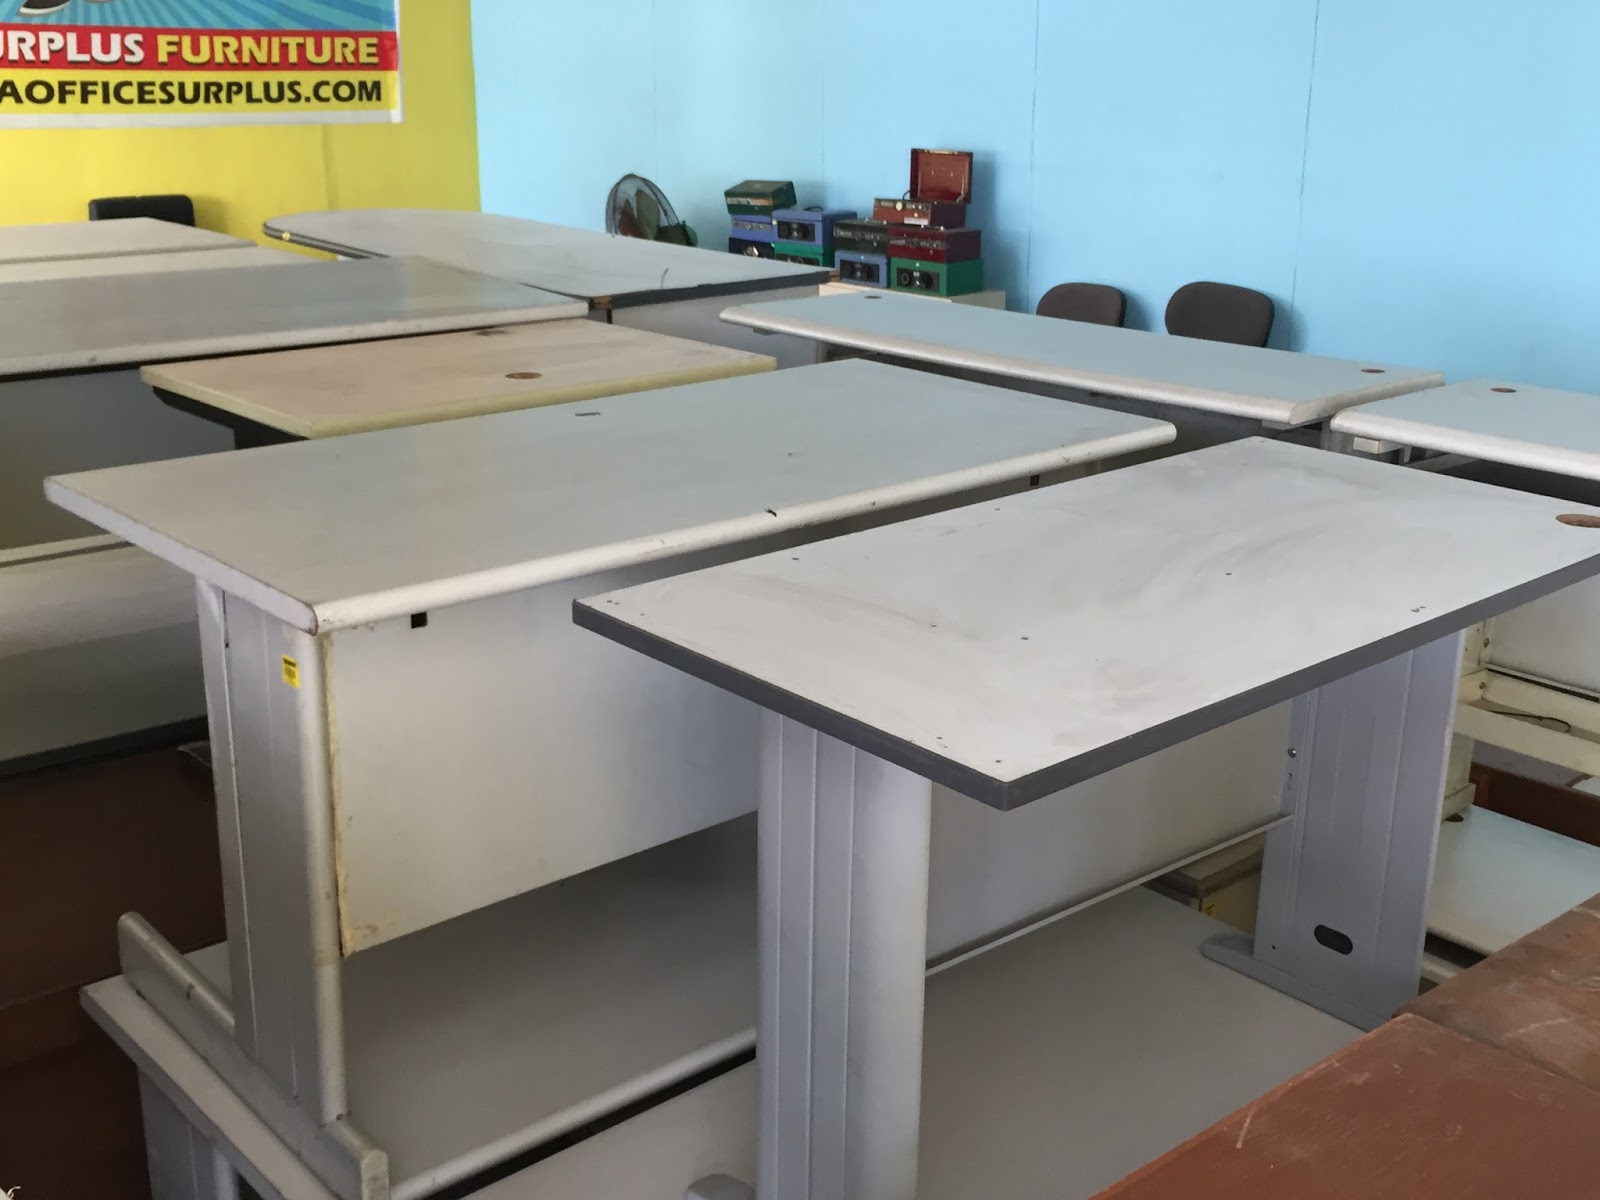 Cheap Office Furniture Supplier In Manila Philippines   MEGAOFFICE SURPLUS